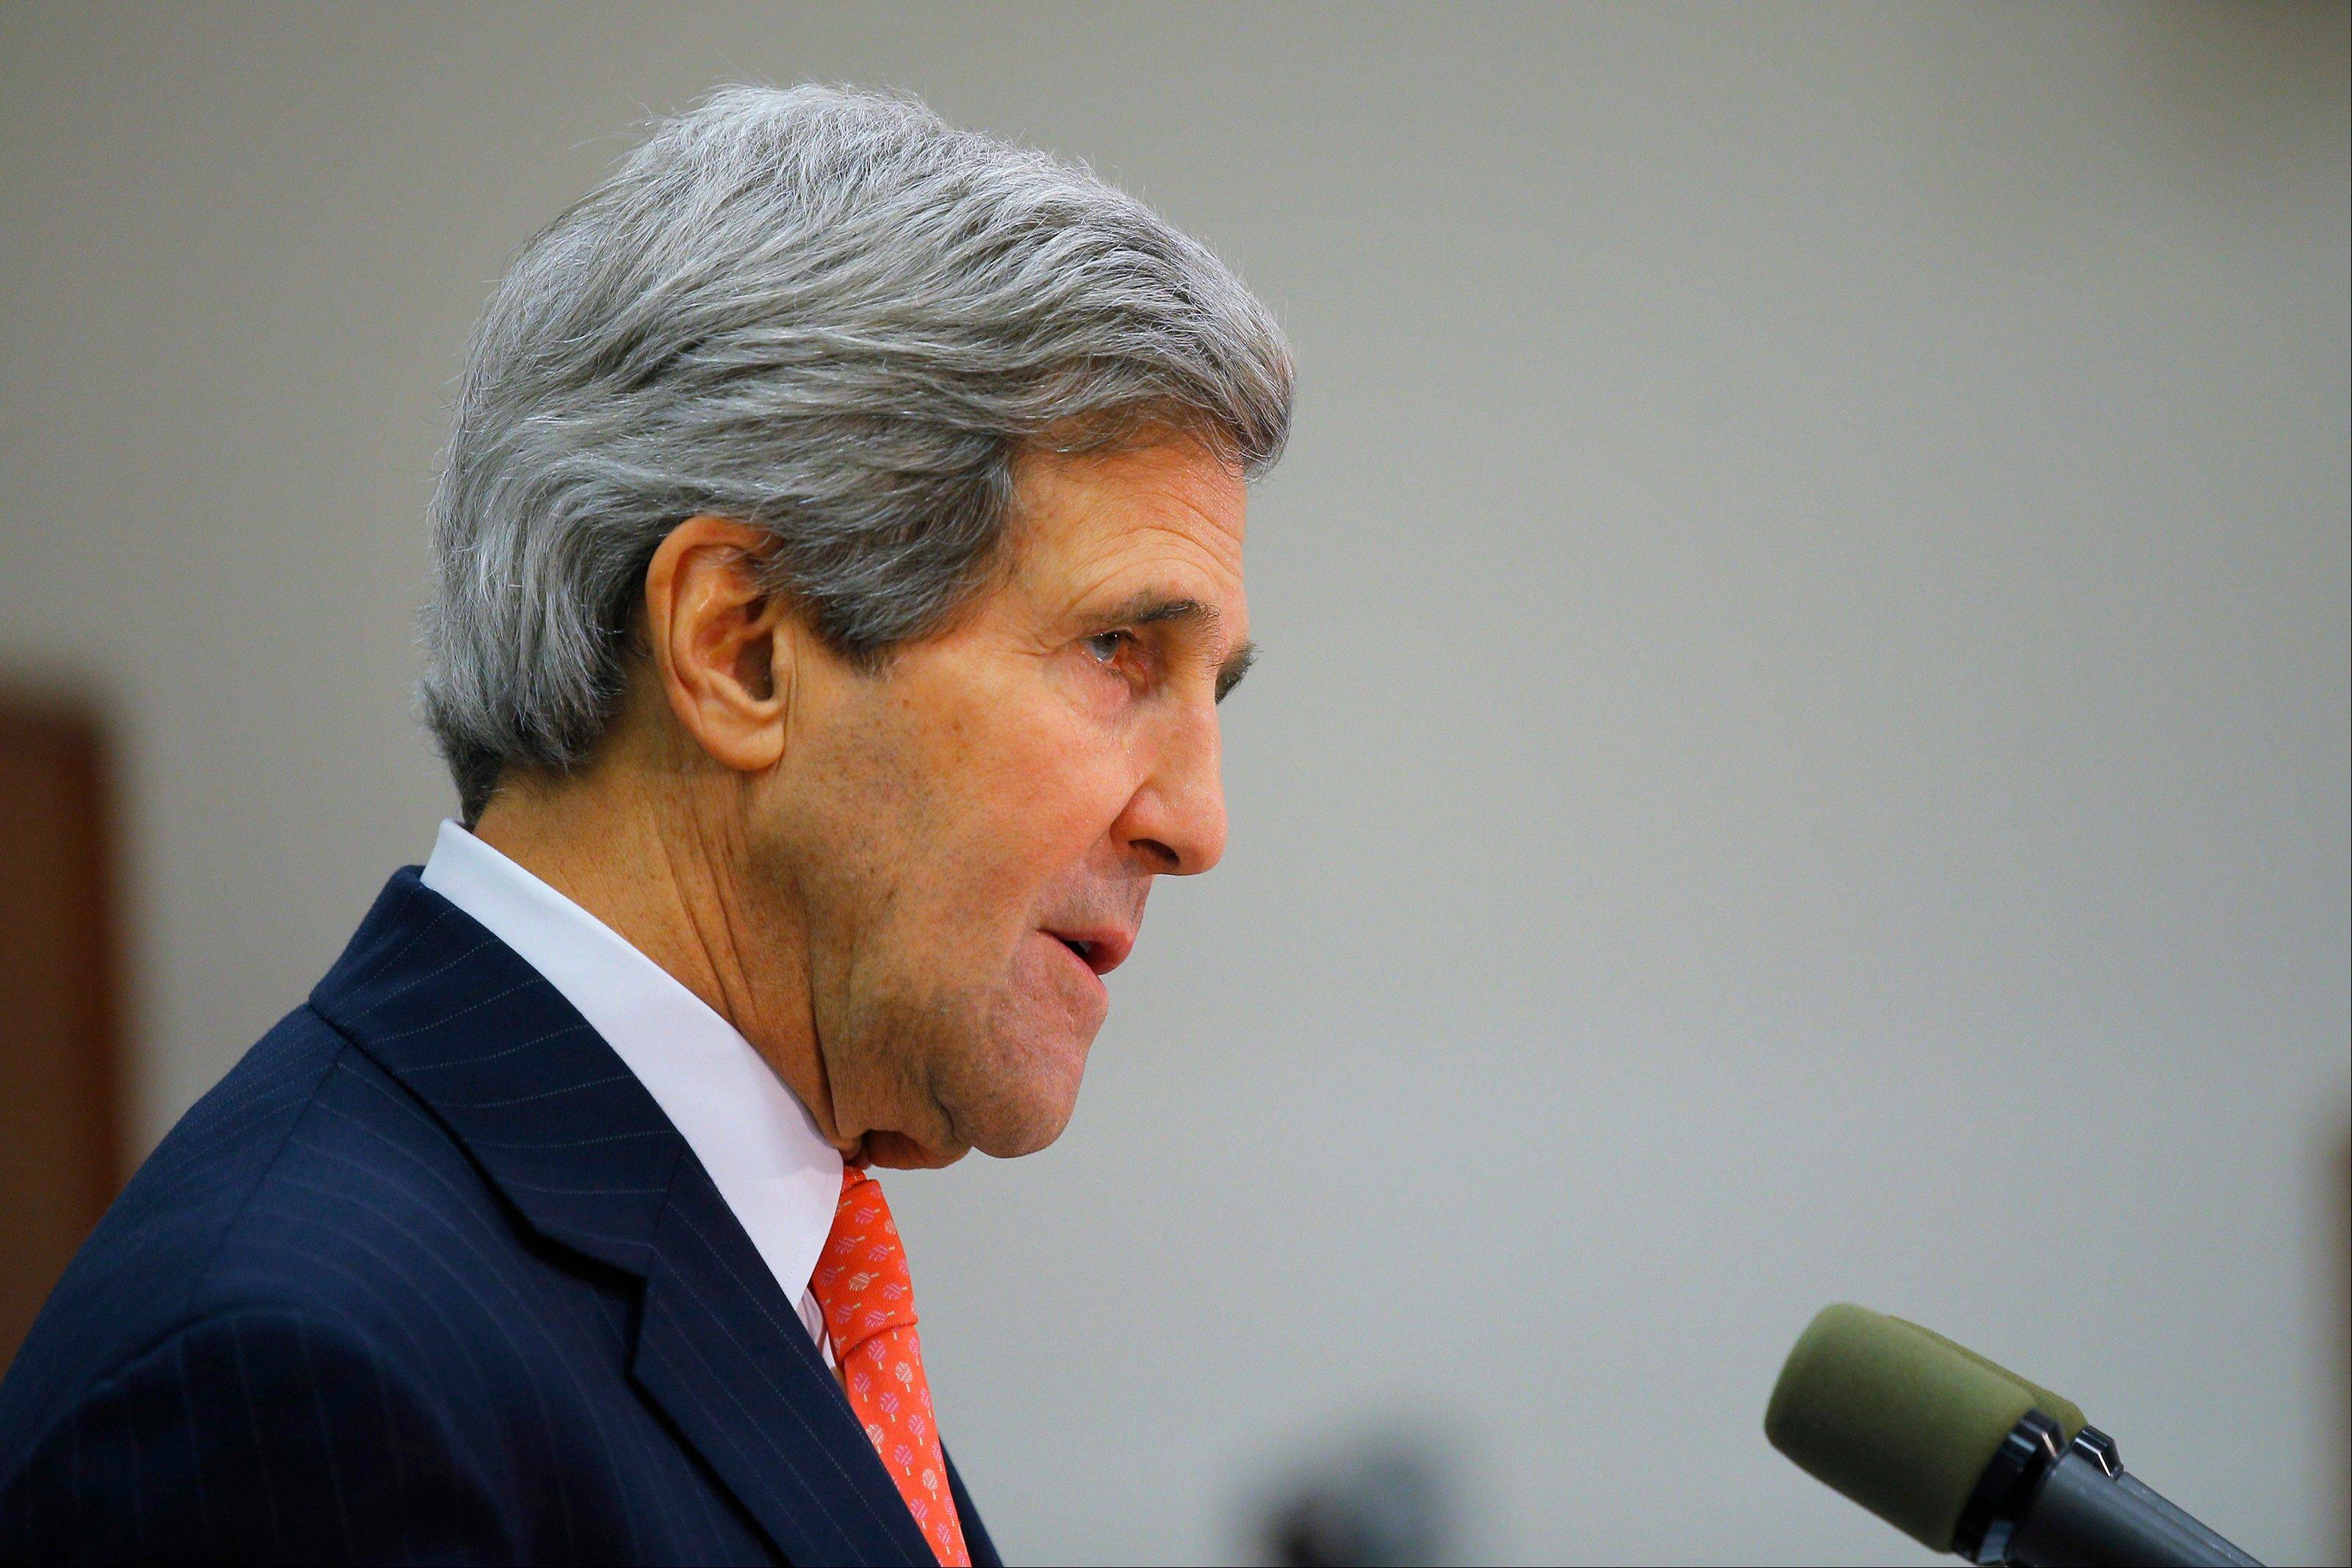 Secretary of State John Kerry says the United States will continue to seek the release of an American citizen missing in Iran. But at a news conference in Tel Aviv, he sidestepped questions about an Associated Press report saying the missing American, Robert Levinson, had been working in Iran for the CIA on an unapproved intelligence-gathering mission when he vanished nearly seven years ago.